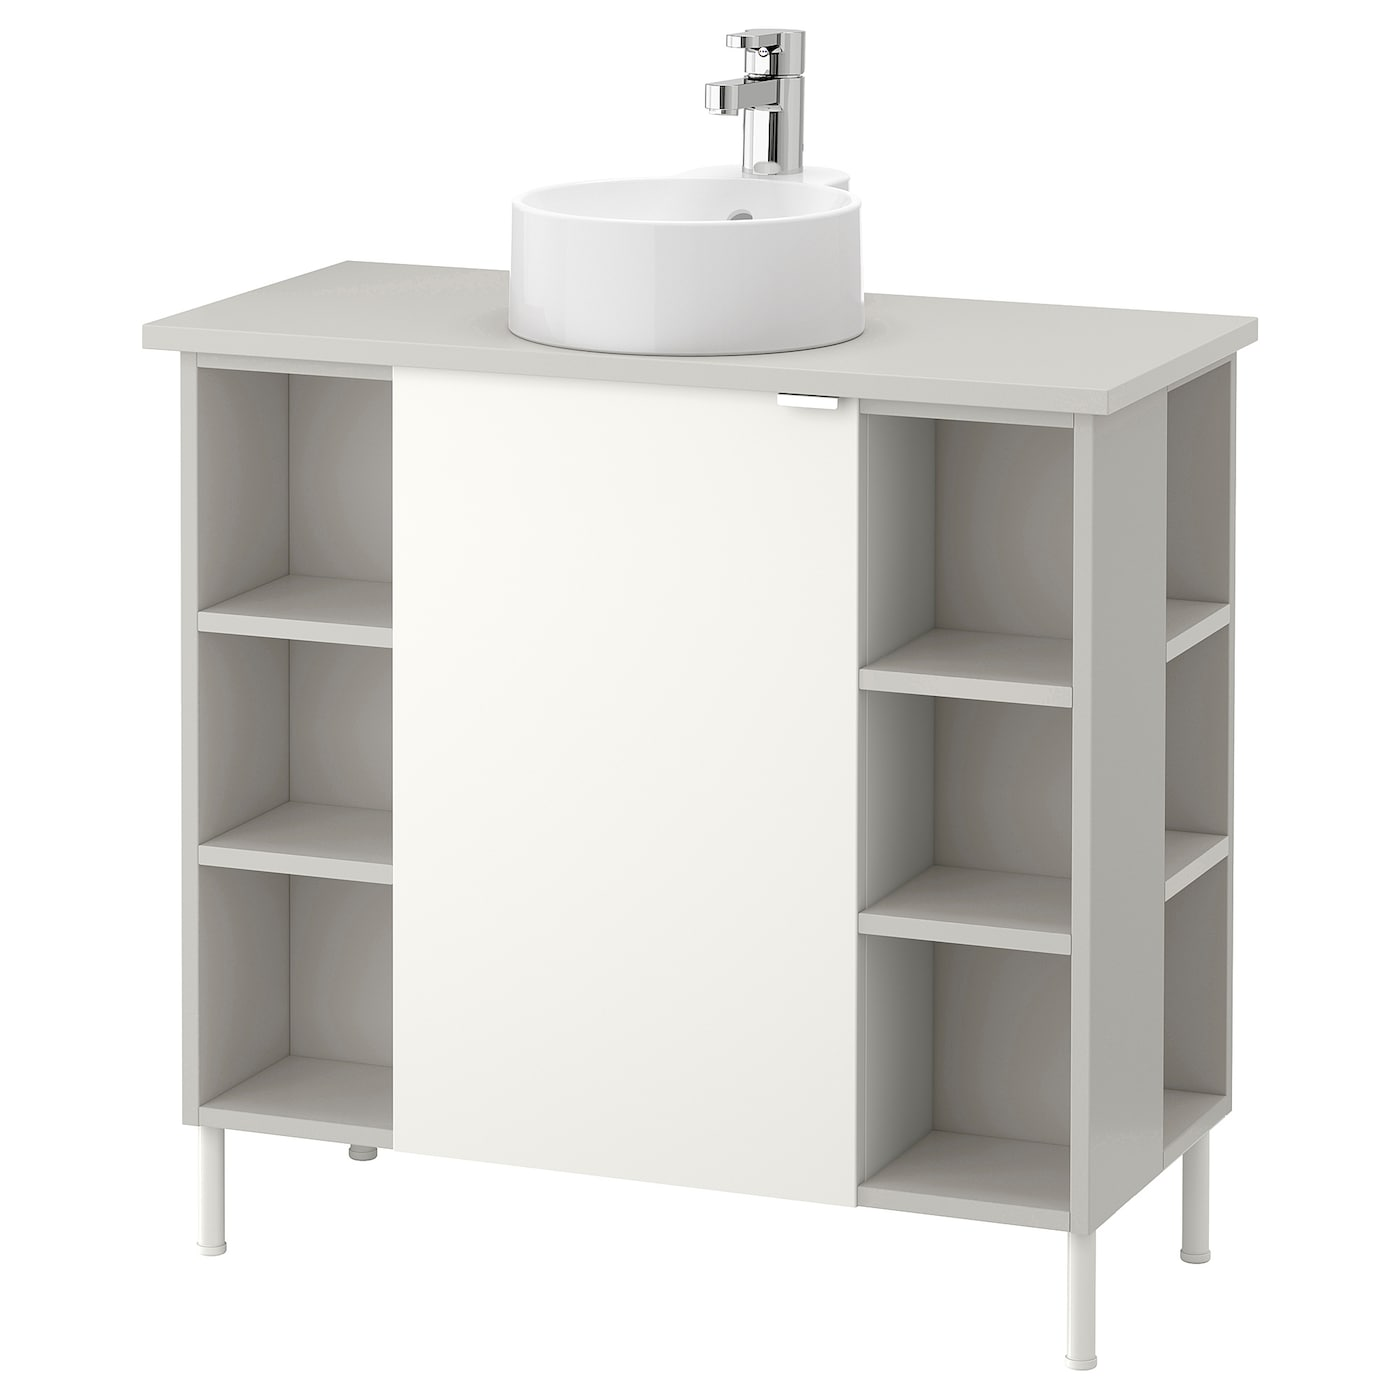 IKEA GUTVIKEN/LILLÅNGEN/VISKAN washbasin cab 1 door/4 end unit